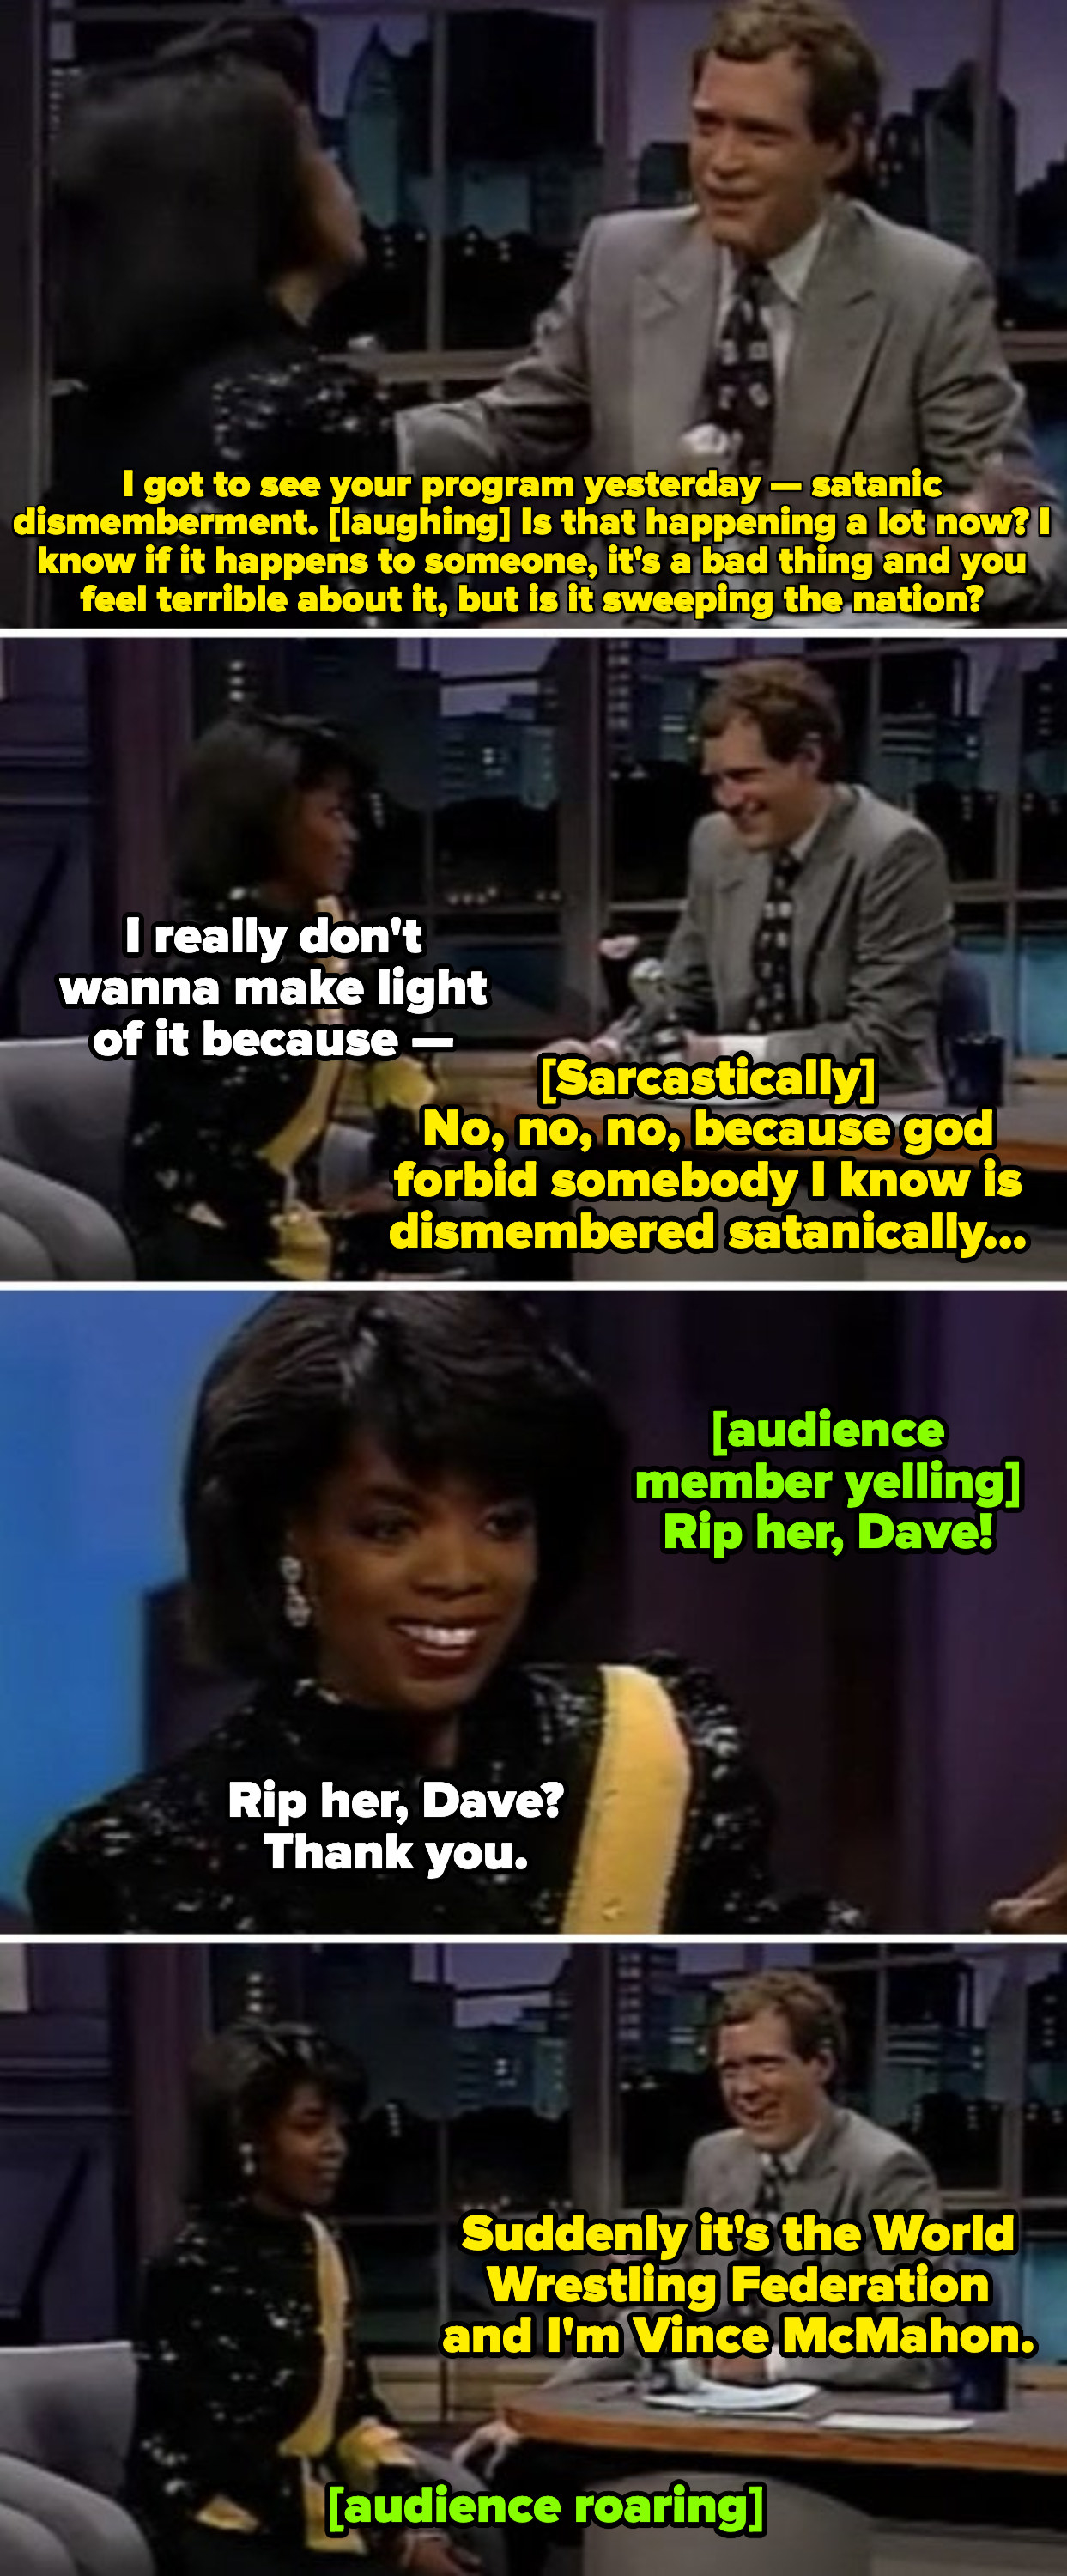 """Letterman mocking Oprah for reporting on satanic dismemberment on her show in the late '80s -- an audience member yelling at Letterman: """"Rip her, Dave!"""" and him doing nothing about it"""